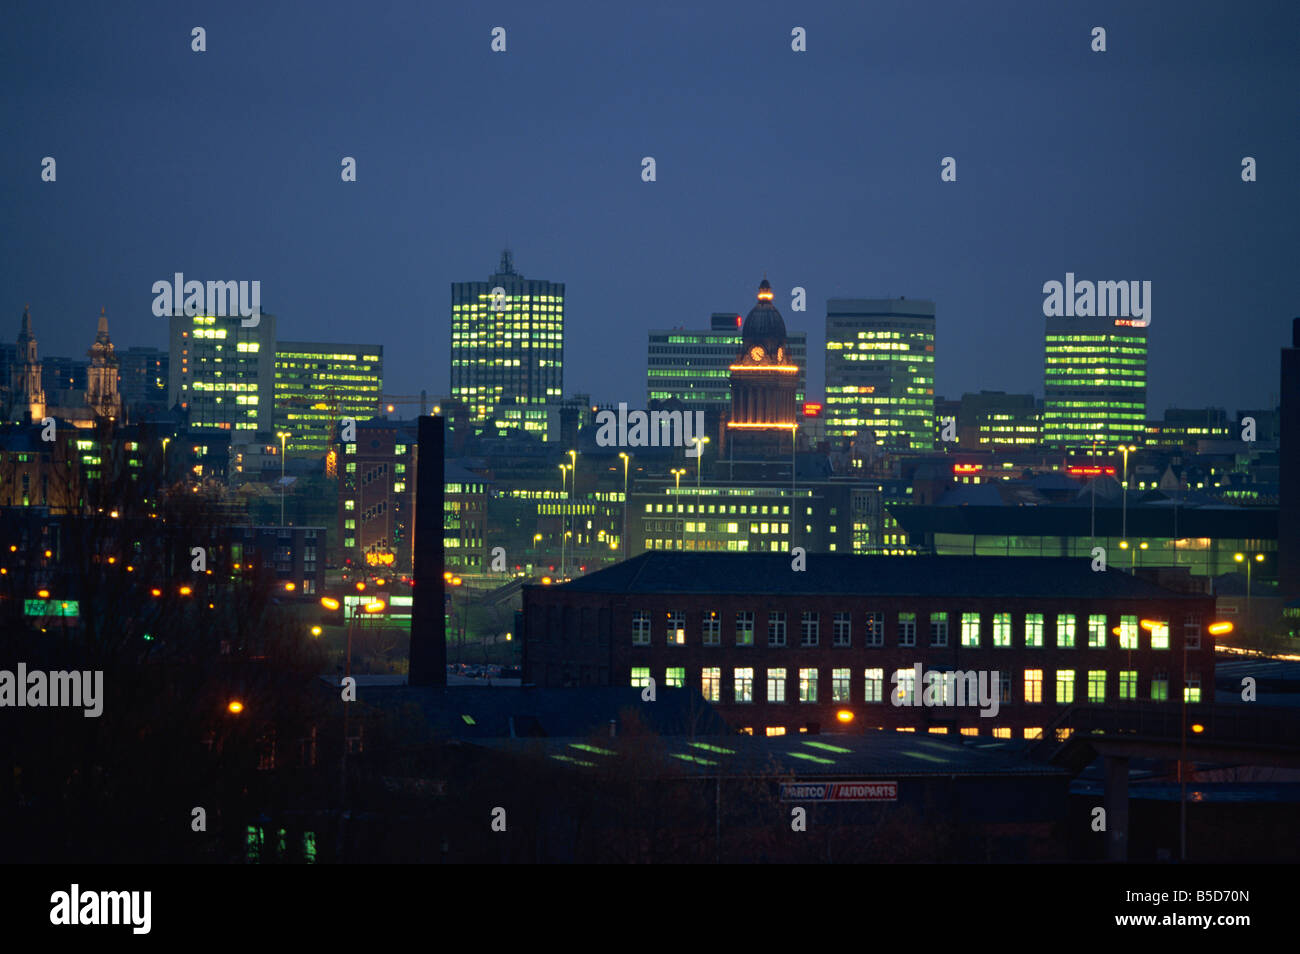 City skyline from the Armley area, Leeds, Yorkshire, , Europe - Stock Image